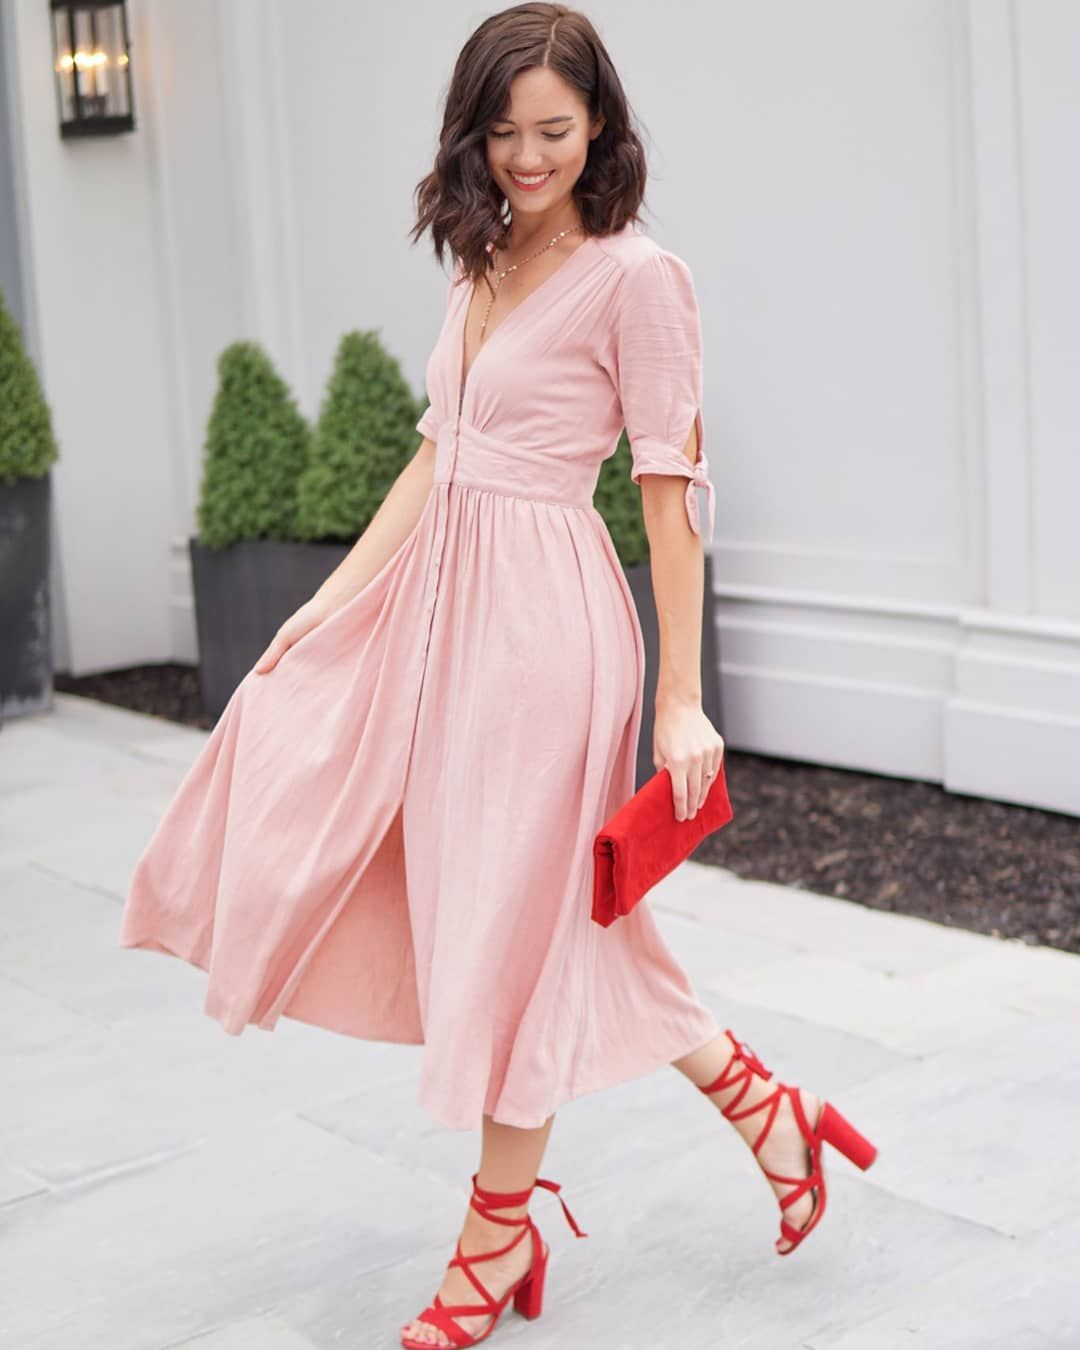 peach dress and red shoes